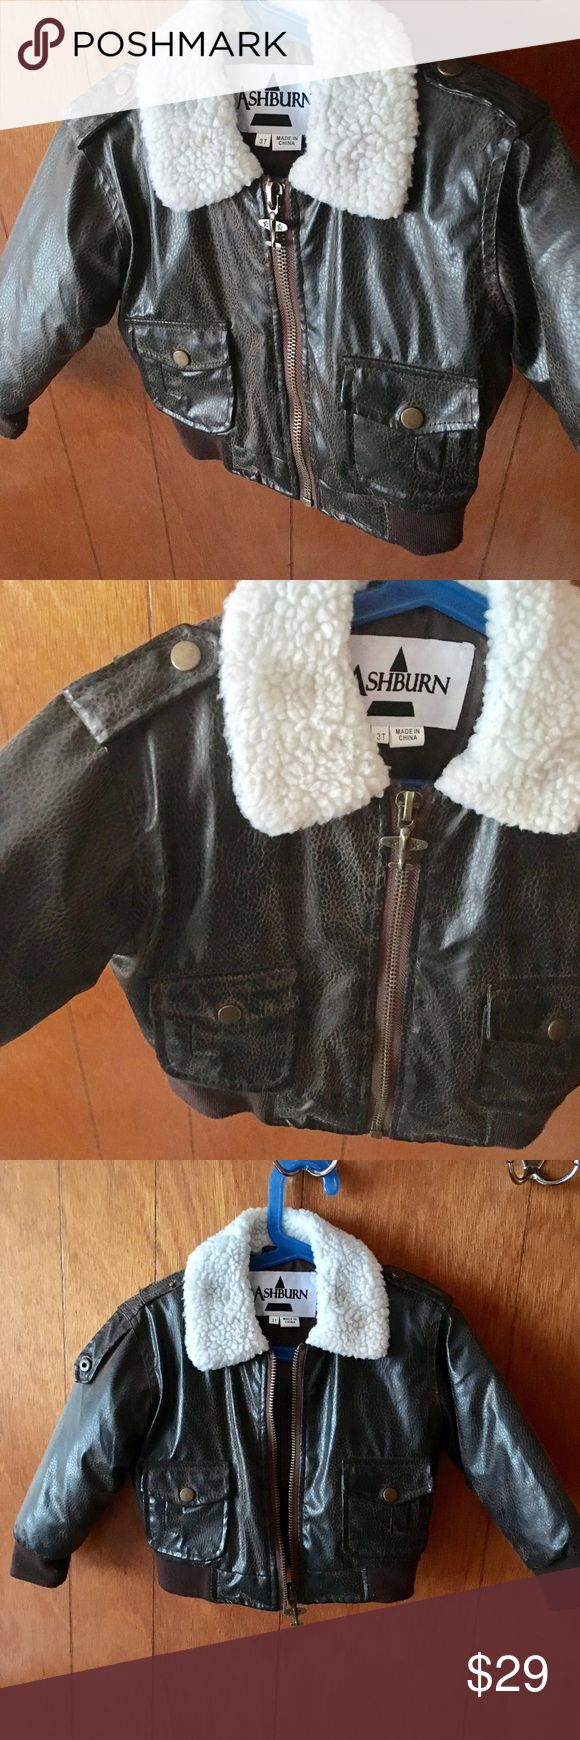 Faux Leather Toddler Bomber Jacket Great condition 3T Toddler Bomber jacket! Dark brown faux leather. Full zip with airplane zipper. Soft off white collar. Polyester fill. Machine washable. No cuts in the leather. Slight pilling starting on the cuffs and waistband but I can easily get that off before shipment. Ashburn Jackets & Coats